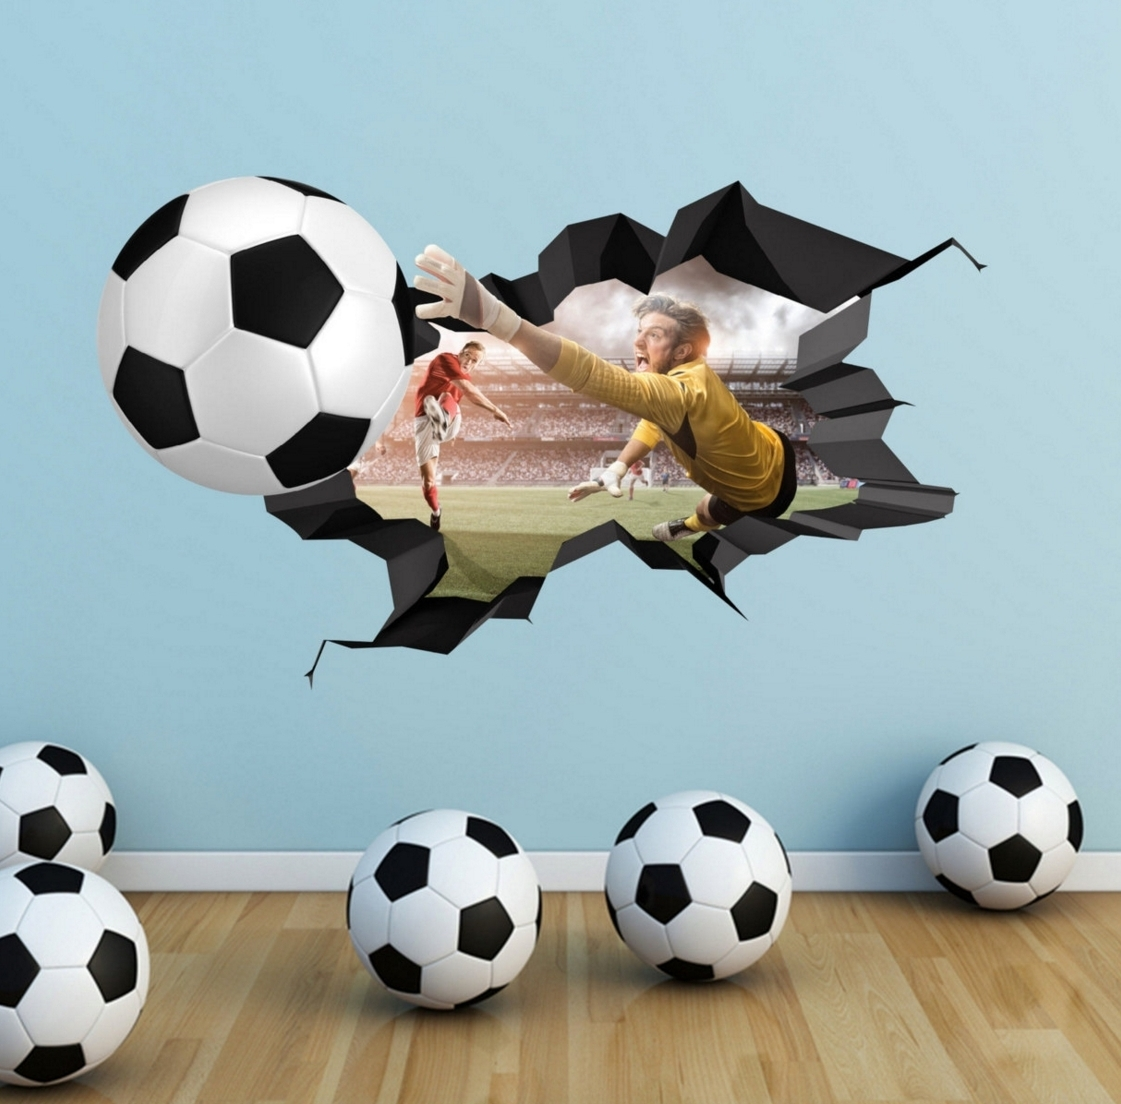 Unique Soccer Ball Wall Decor Gallery (View 20 of 20)